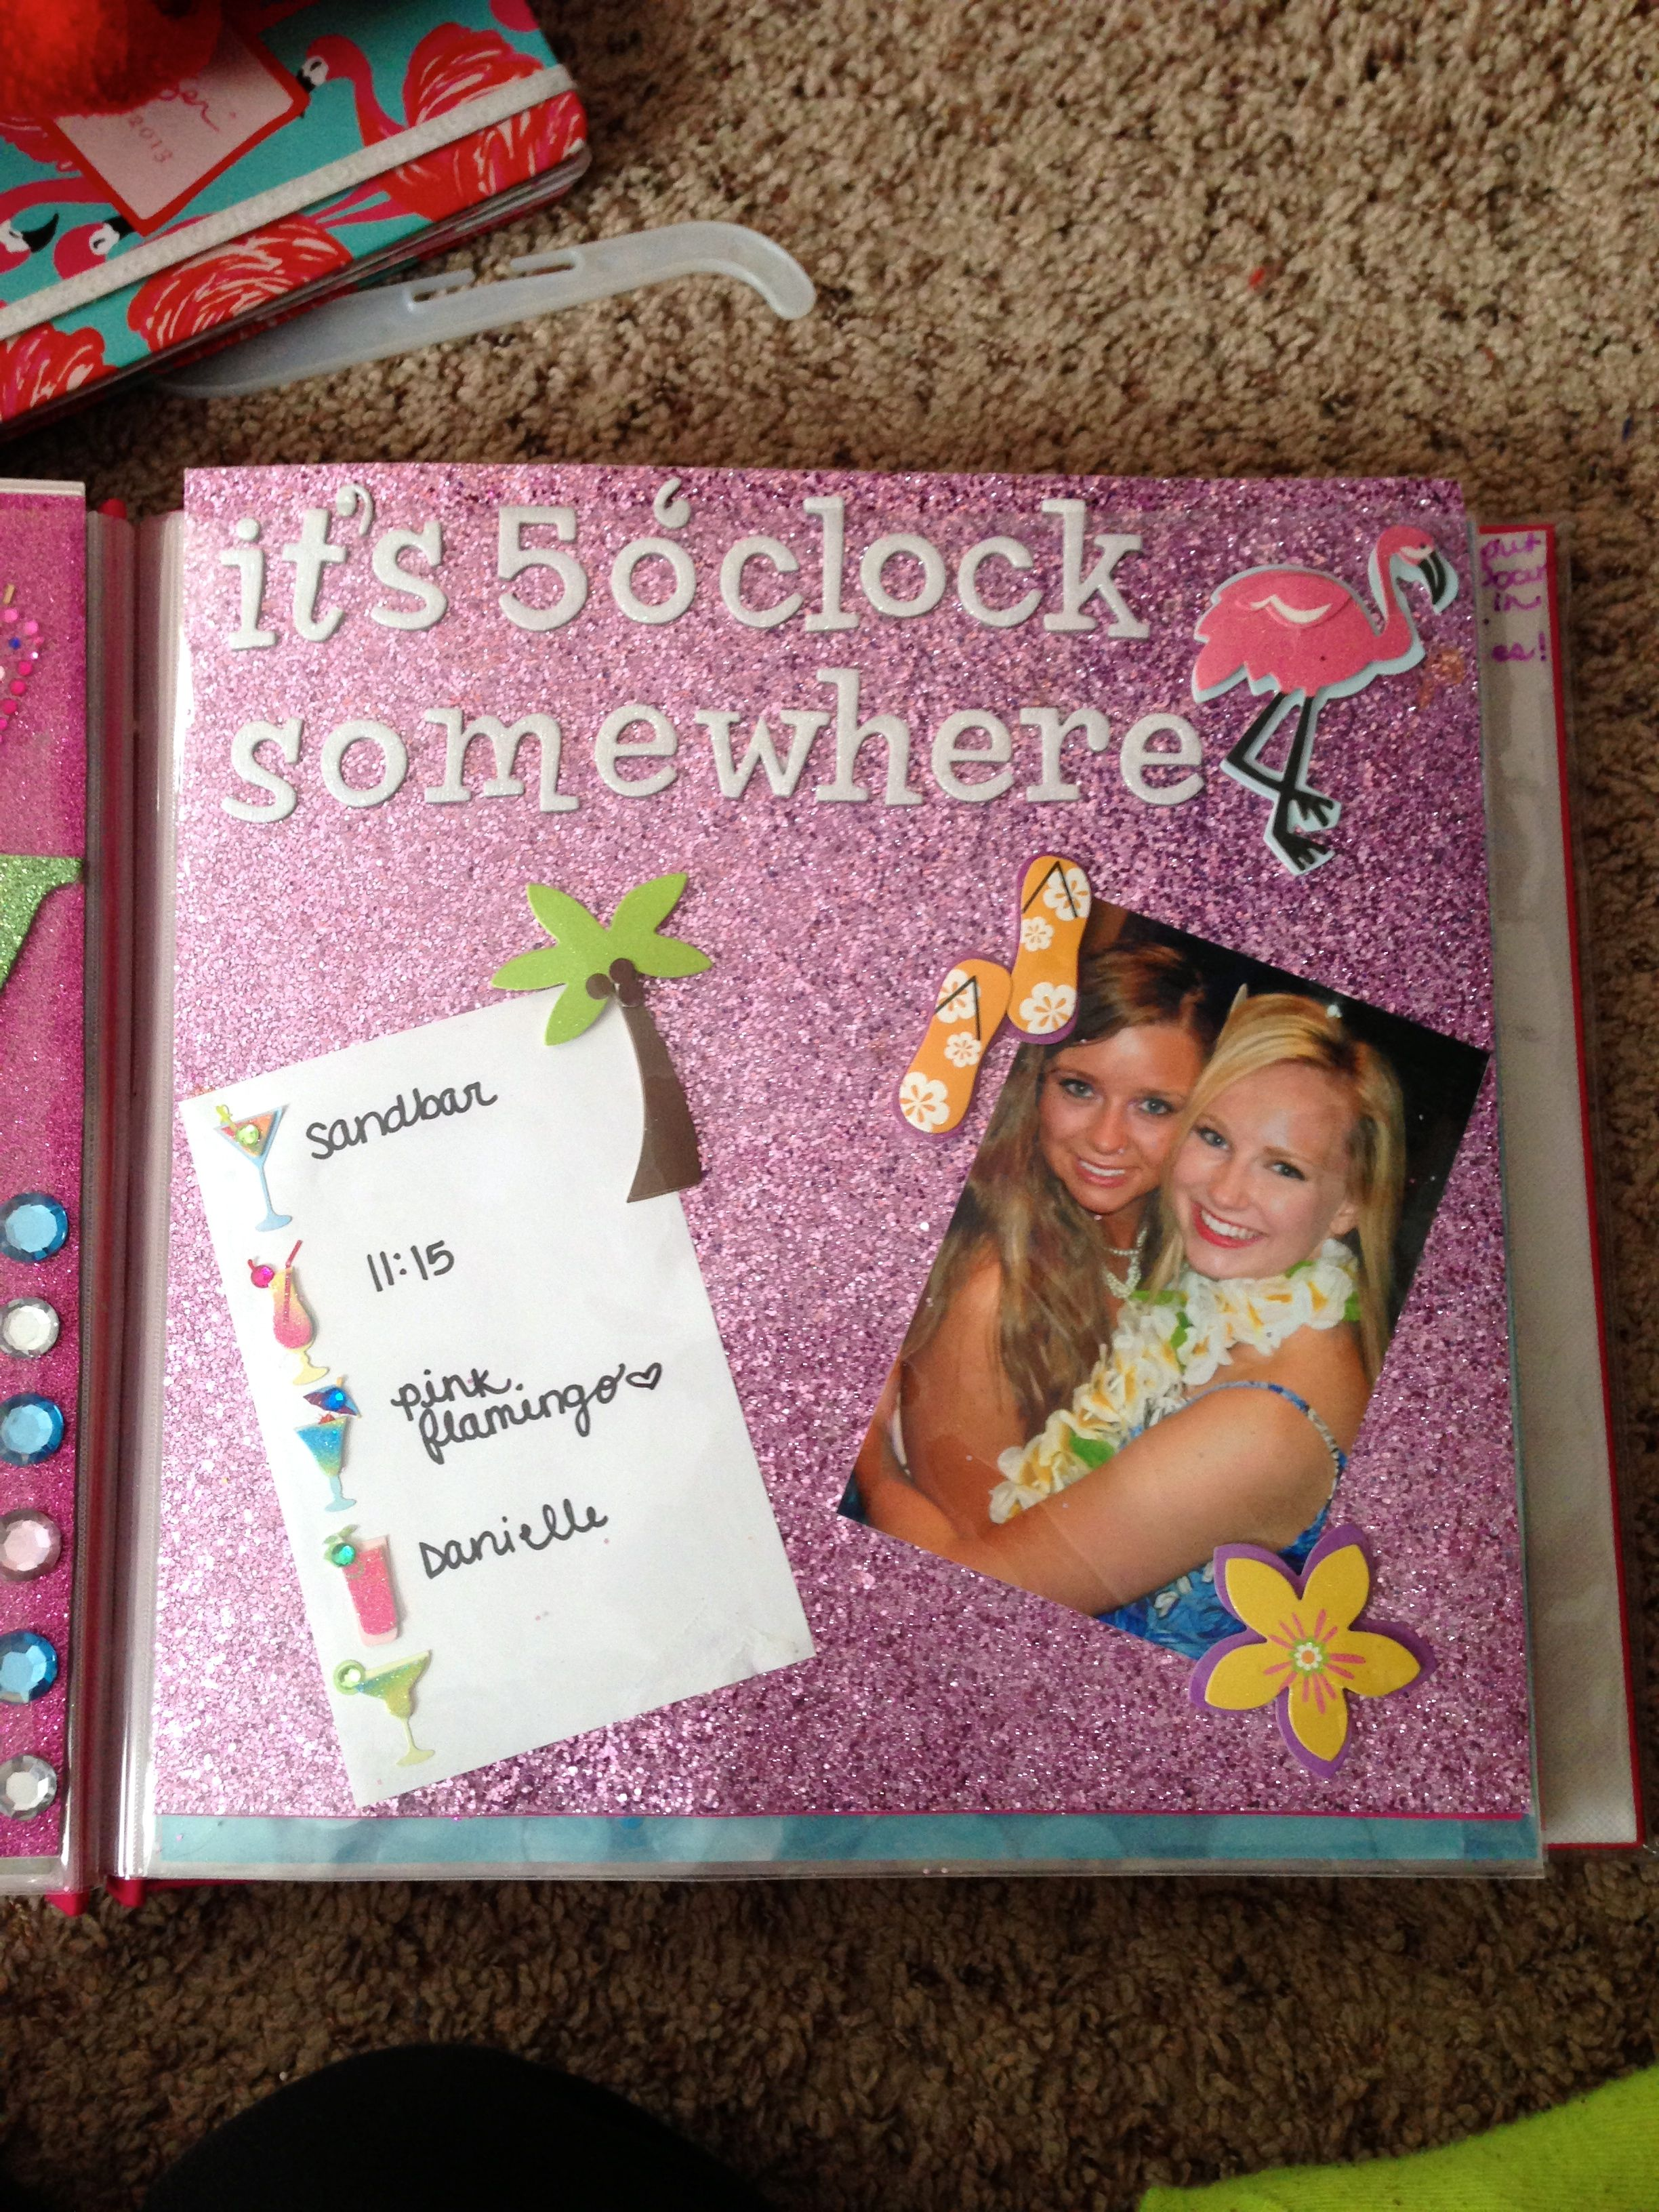 21st birthday photo book ideas ; 34d6ef9cda9124315ecd22cc4e91668d